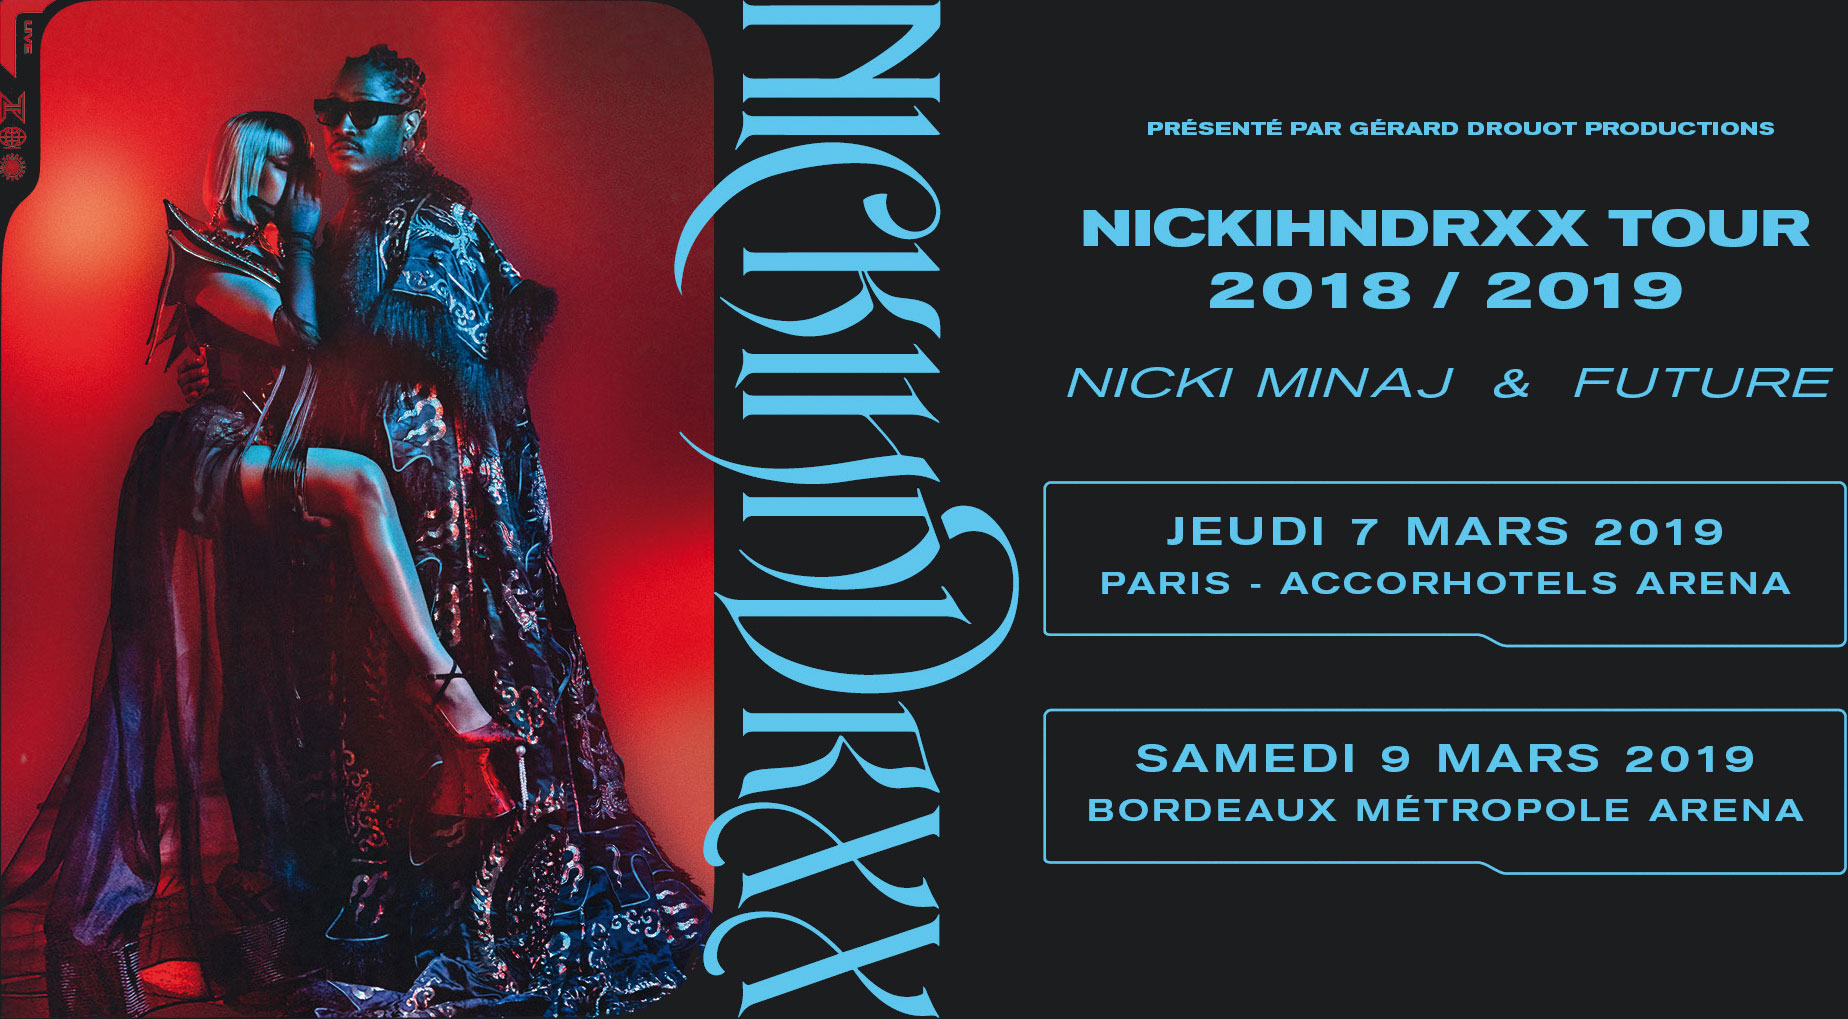 nicki minaj future concert paris bordeaux francenicki minaj future concert paris bordeaux france